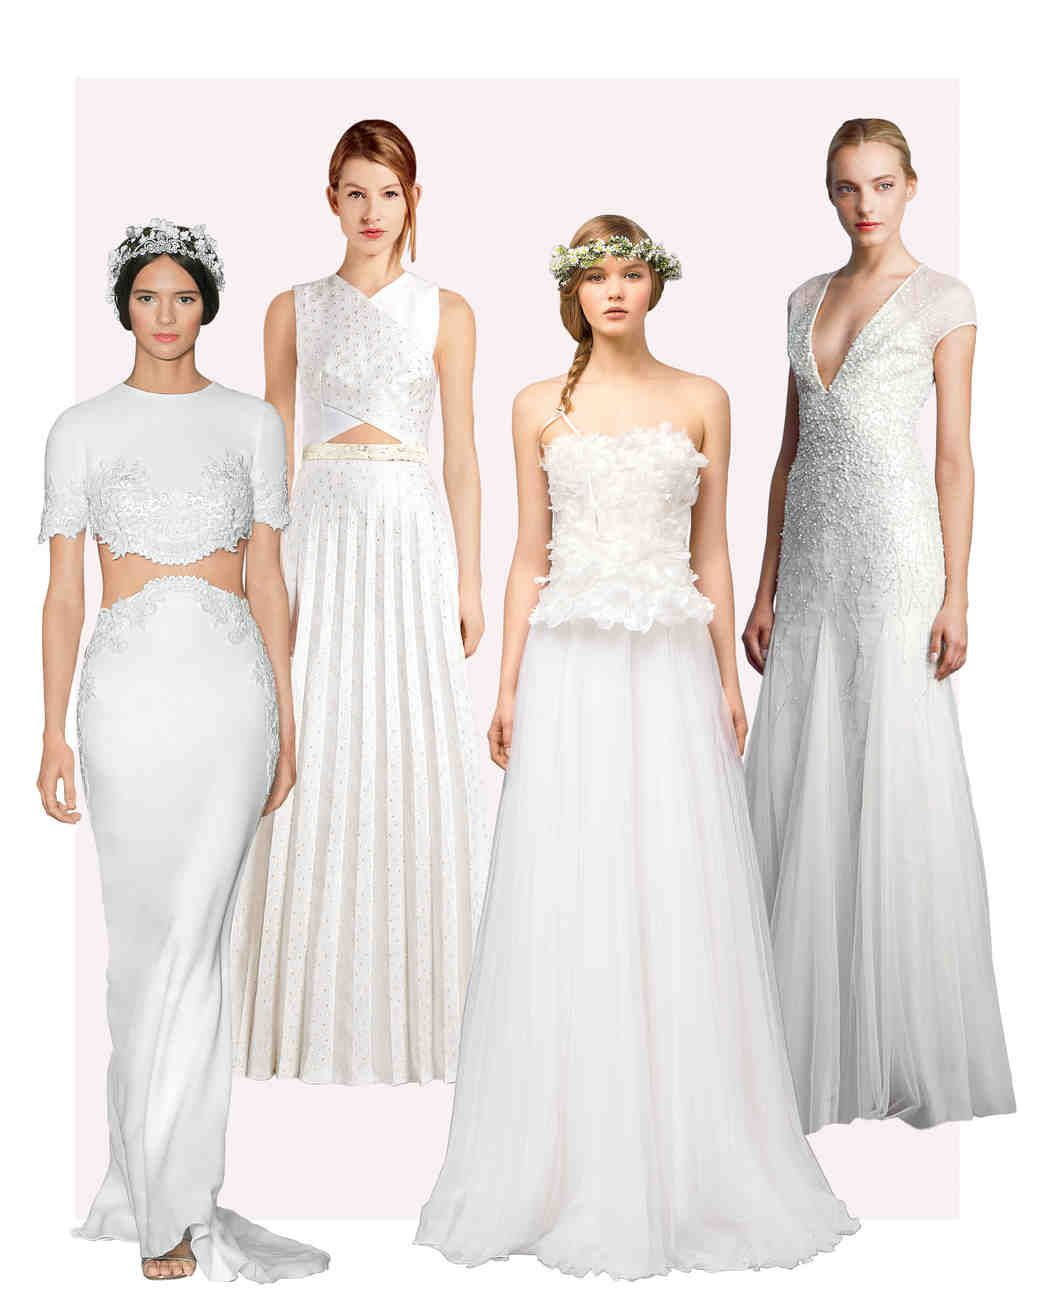 Dresses for wedding day dresses for guest at wedding check more at